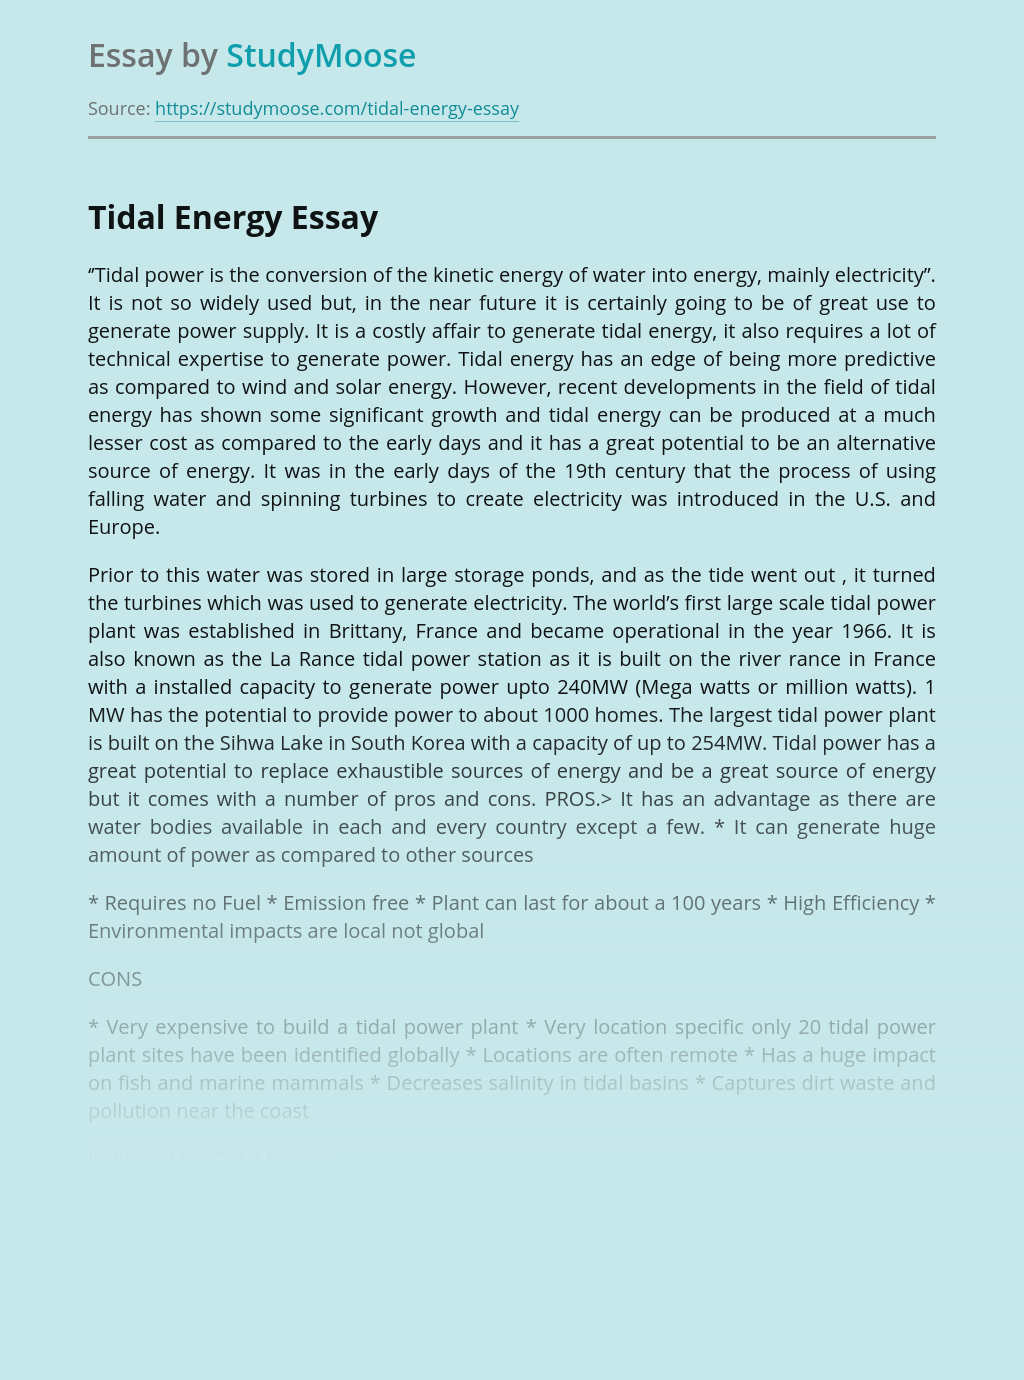 Tidal Energy as One of Alternative Energy Resources